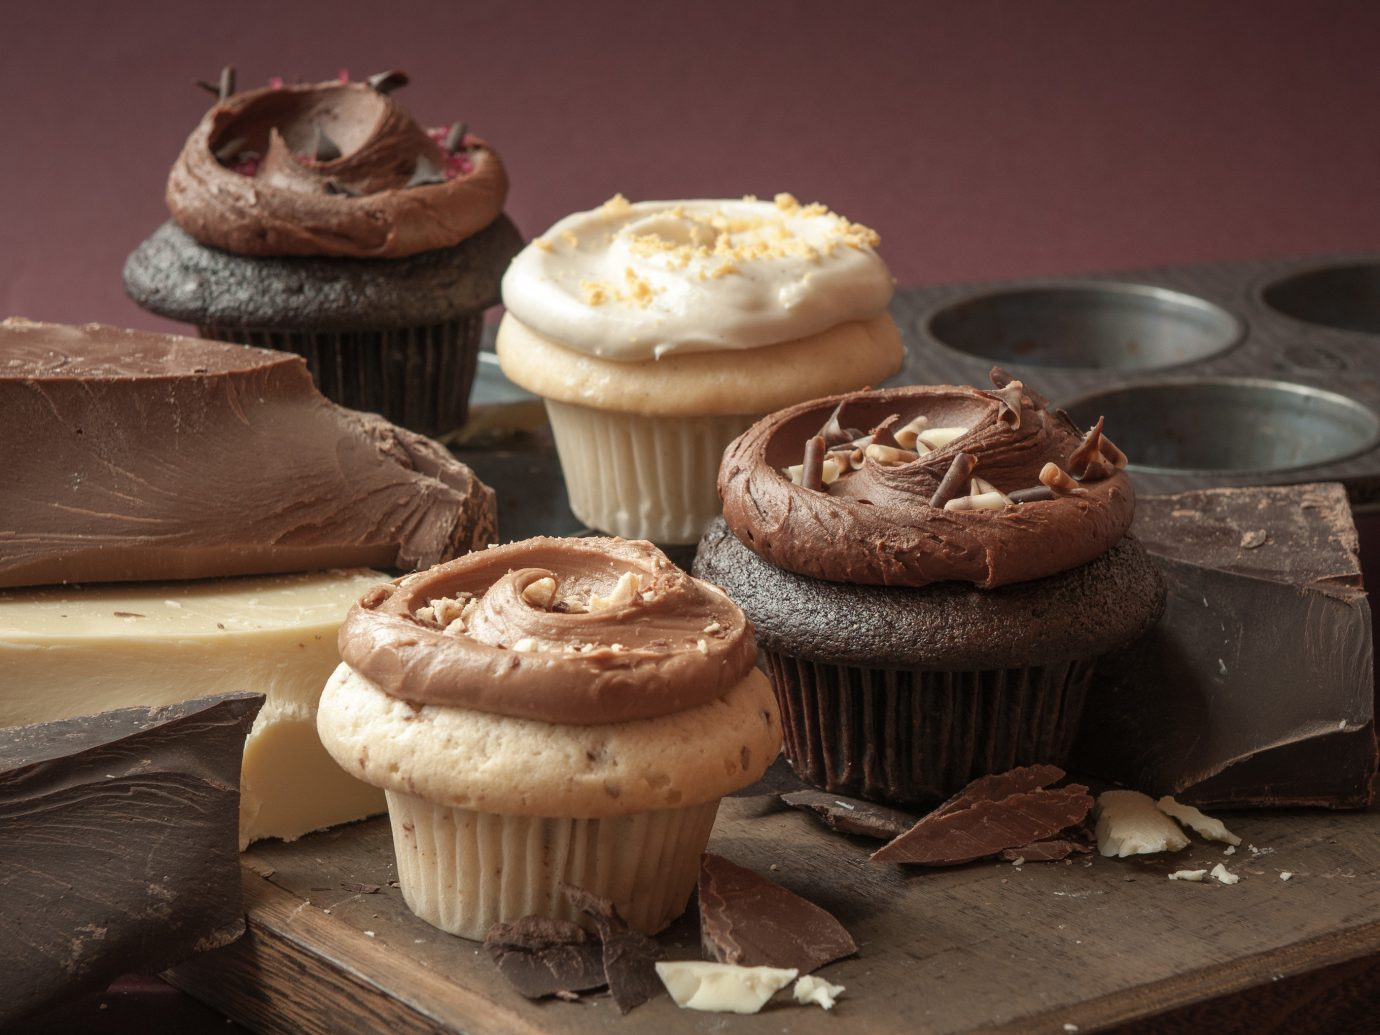 Food + Drink food cupcake cake dessert buttercream icing chocolate wooden peanut butter cup baking sweetness flavor baked goods several